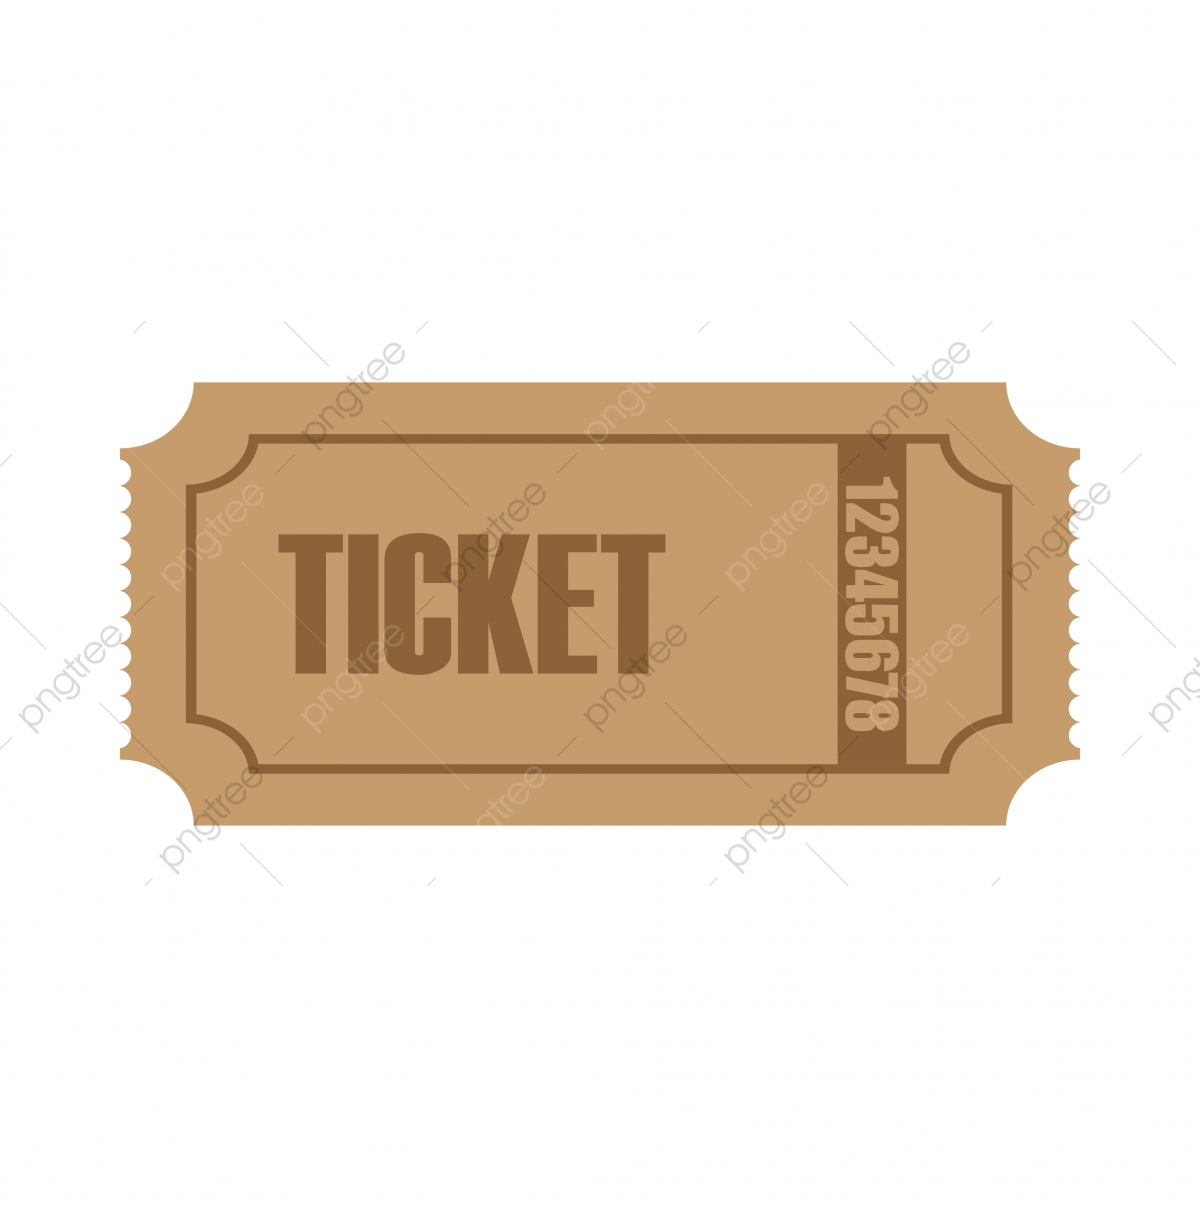 Ticket Logo Icon Design Template Vector Illustration, Symbol.